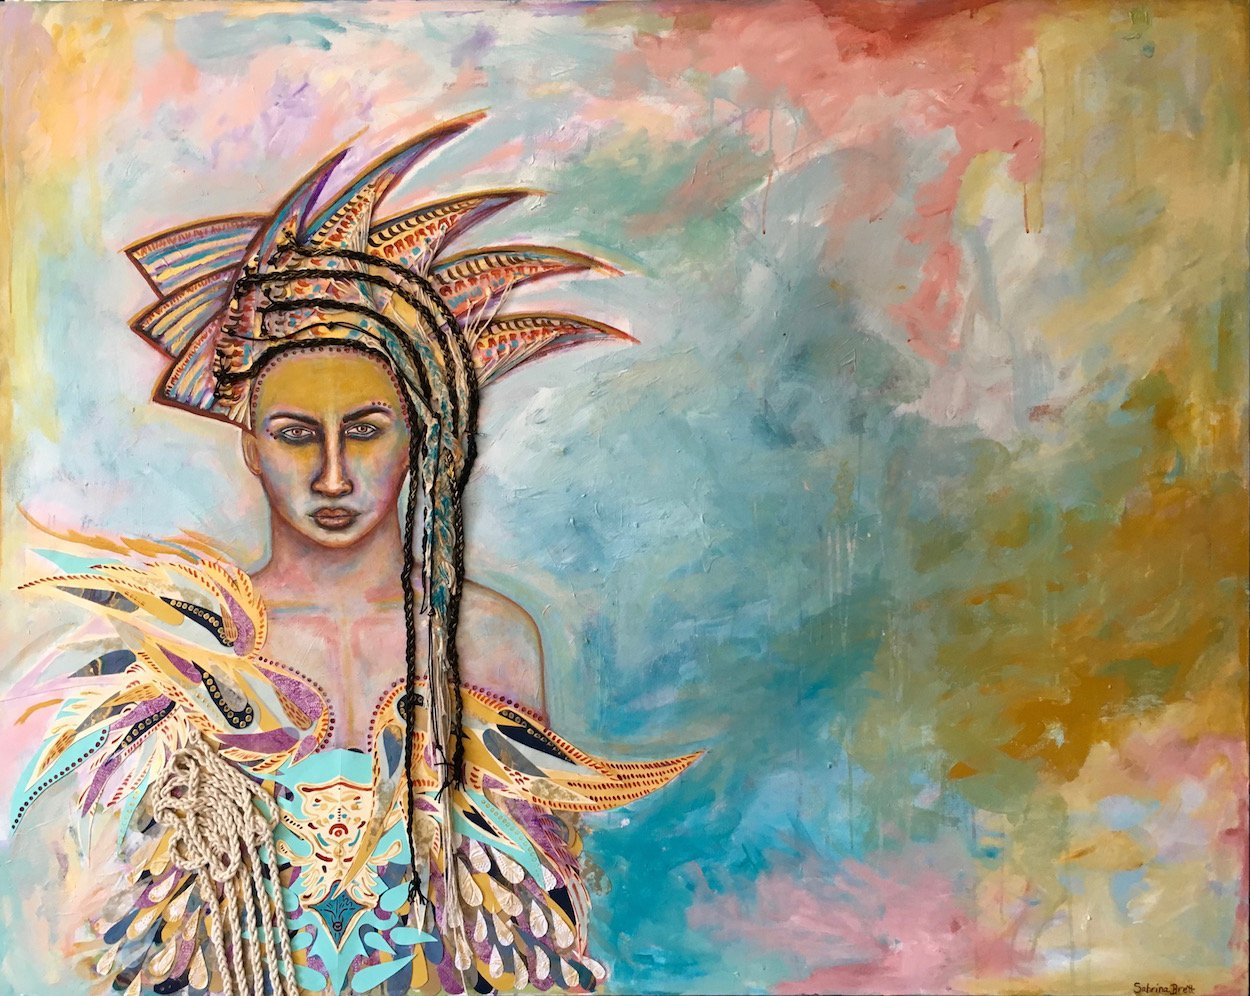 Athena, mixed media on canvas, by Sabrina Brett